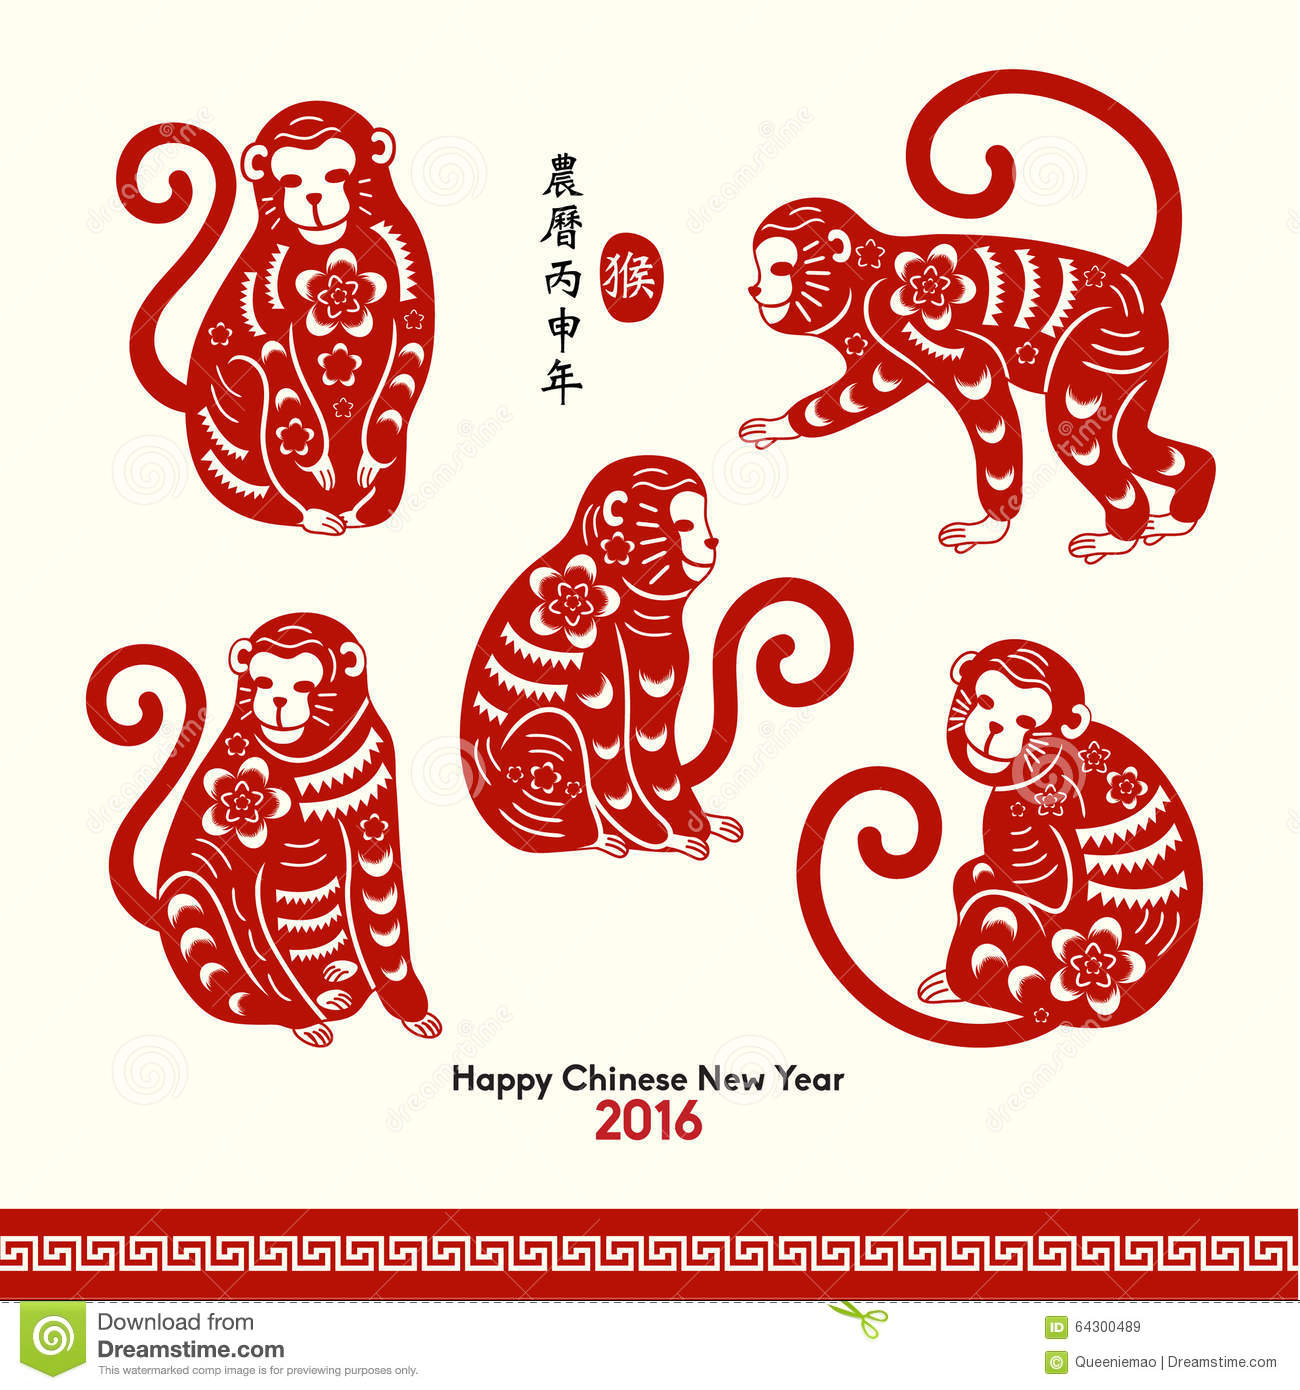 happy chinese new year 2016 year of monkey - Chinese New Year Of The Monkey